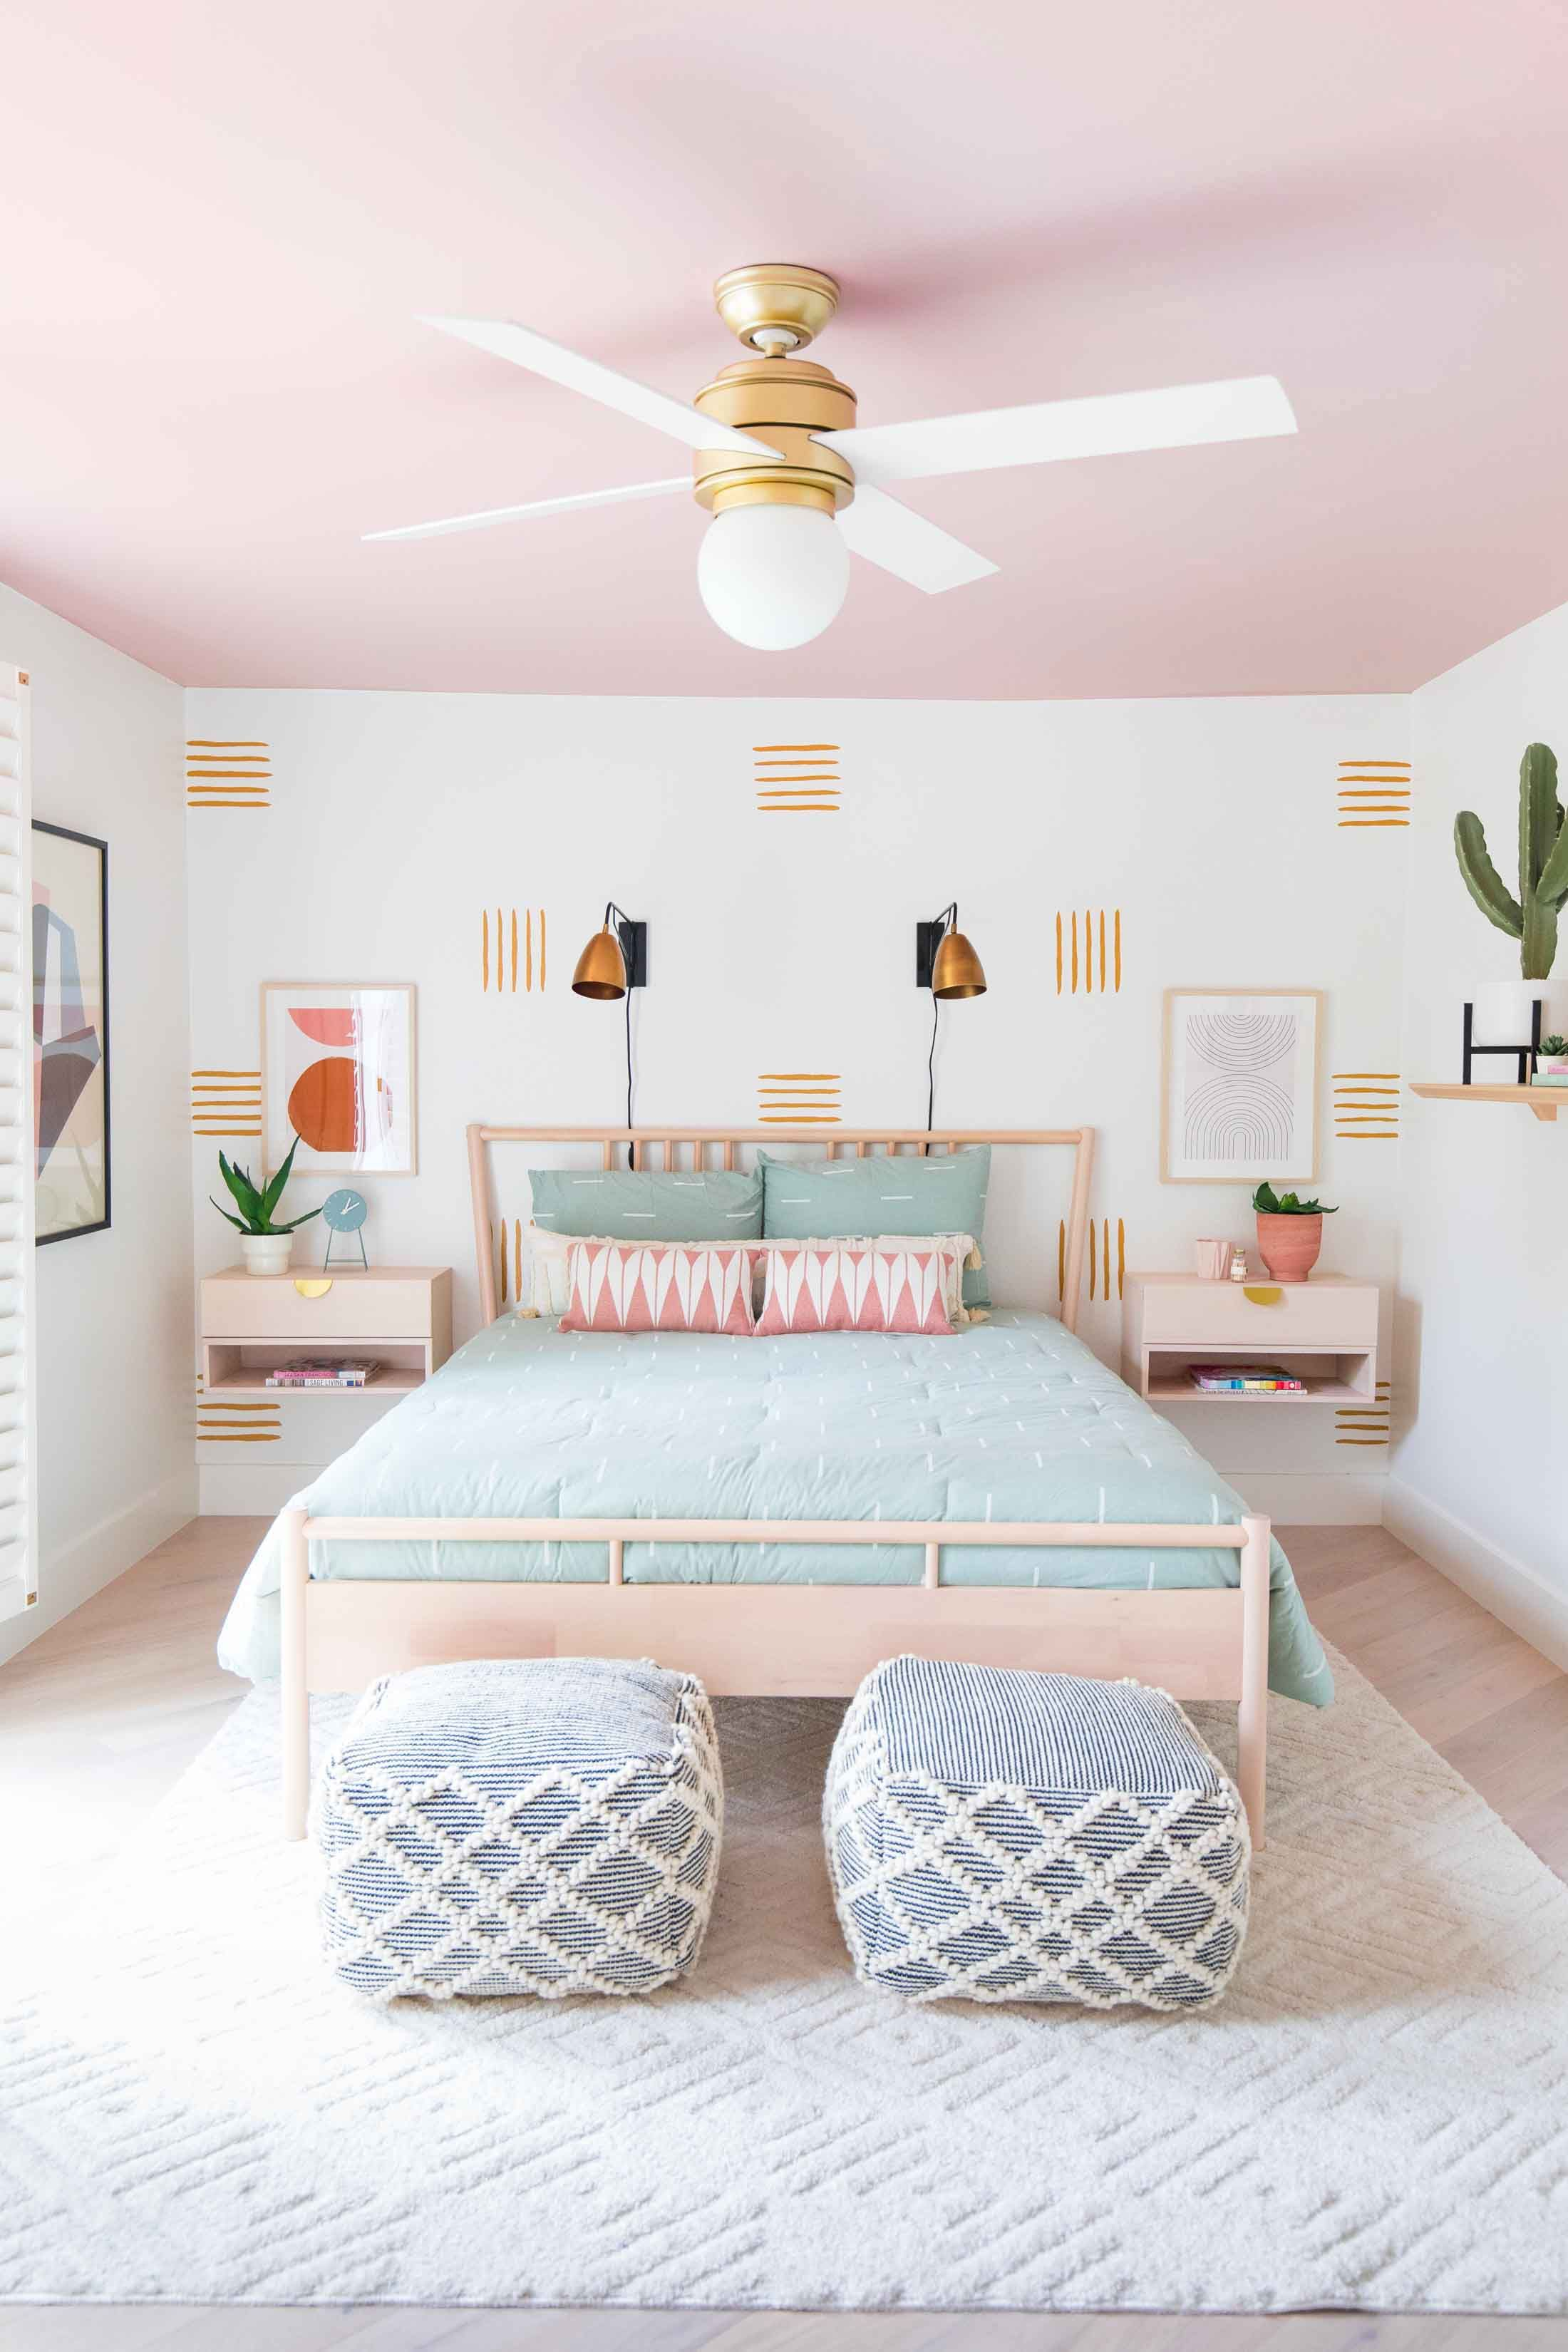 How to Paint an Accent Wall + Our Guest Bedroom Makeover  #wallpaintingideas